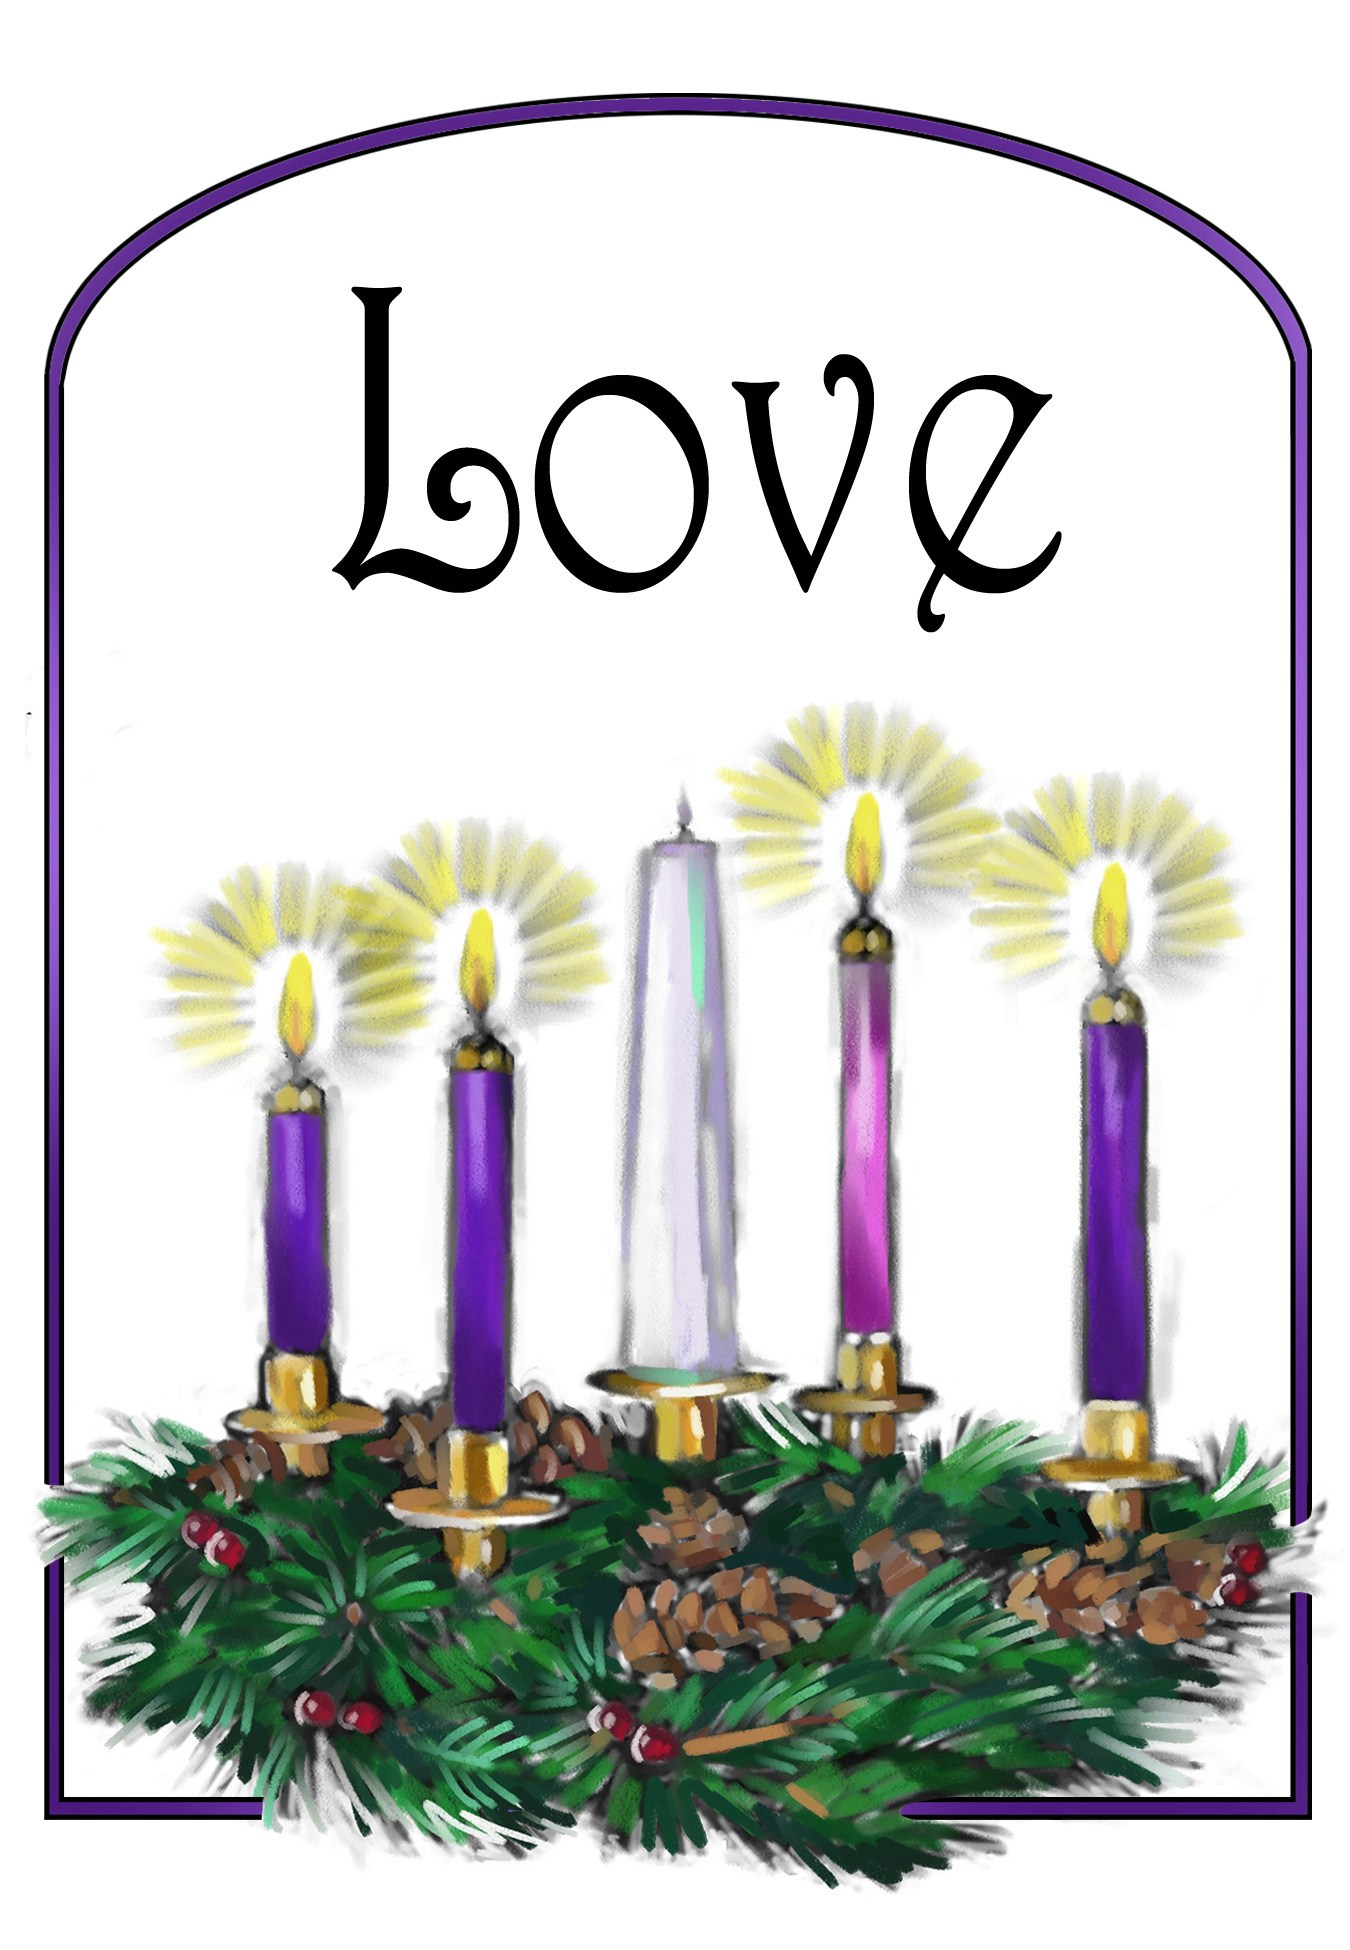 clipart free library 4th clipart sunday advent. Download for free png.